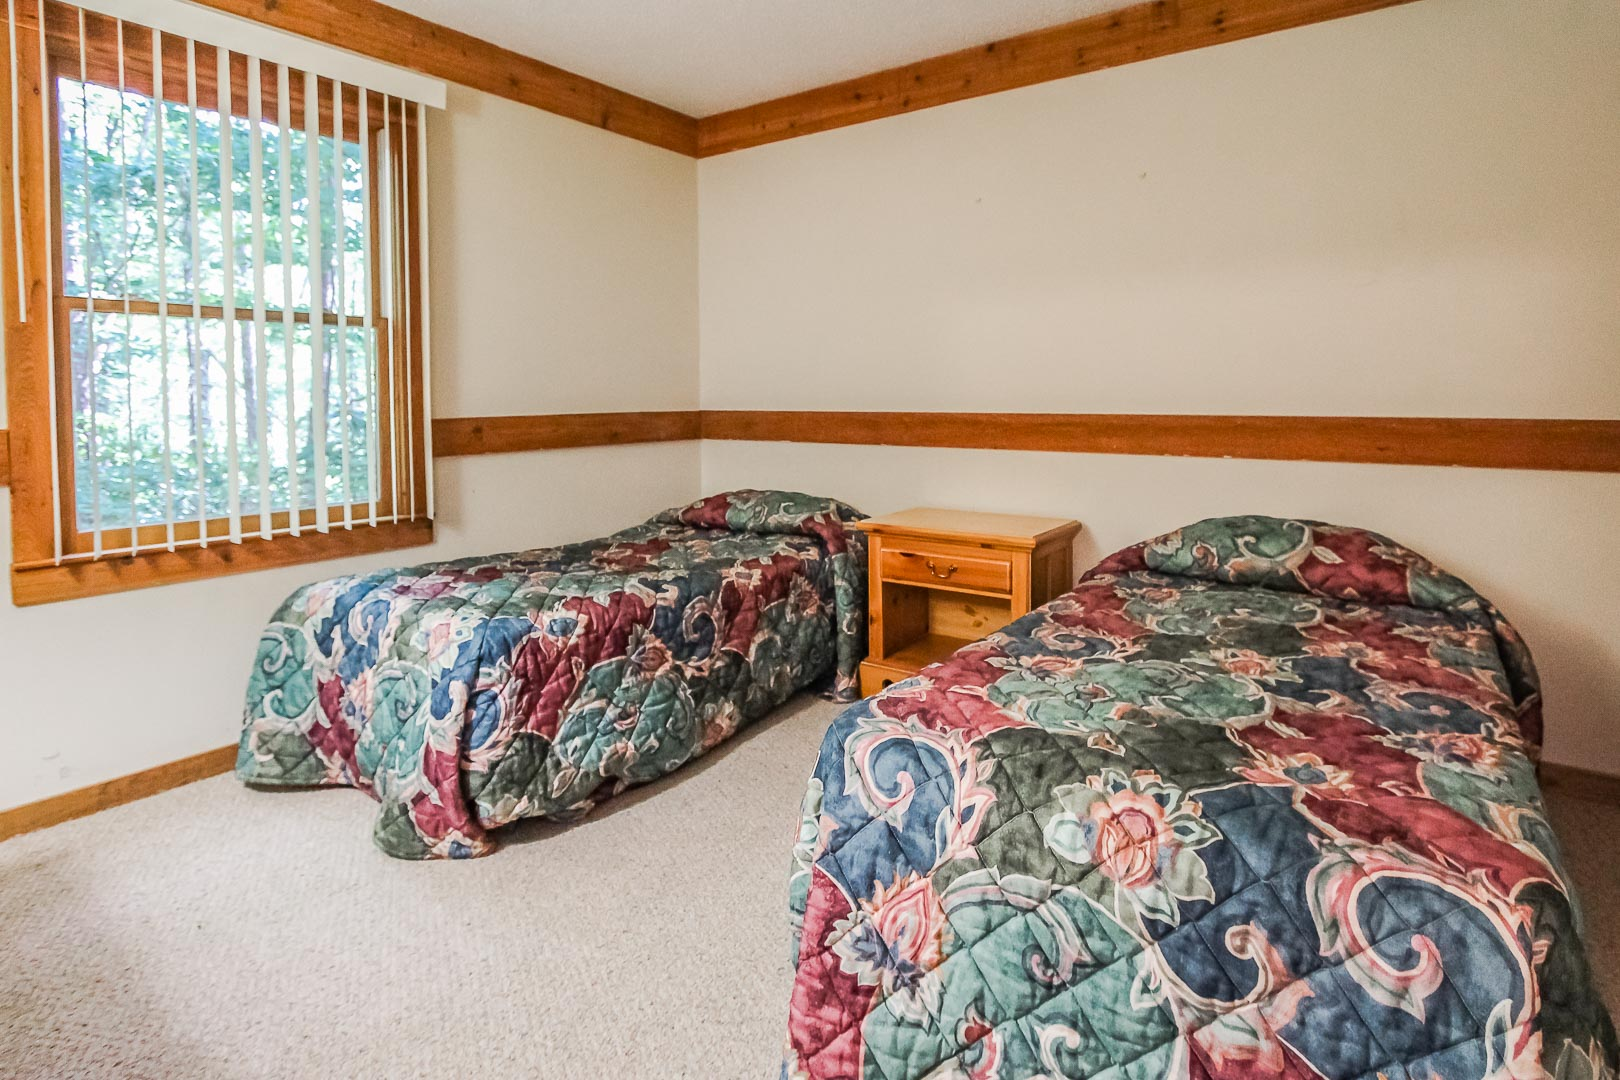 A two bedroom with double beds at VRI's Alpine Crest Resort in Georgia.